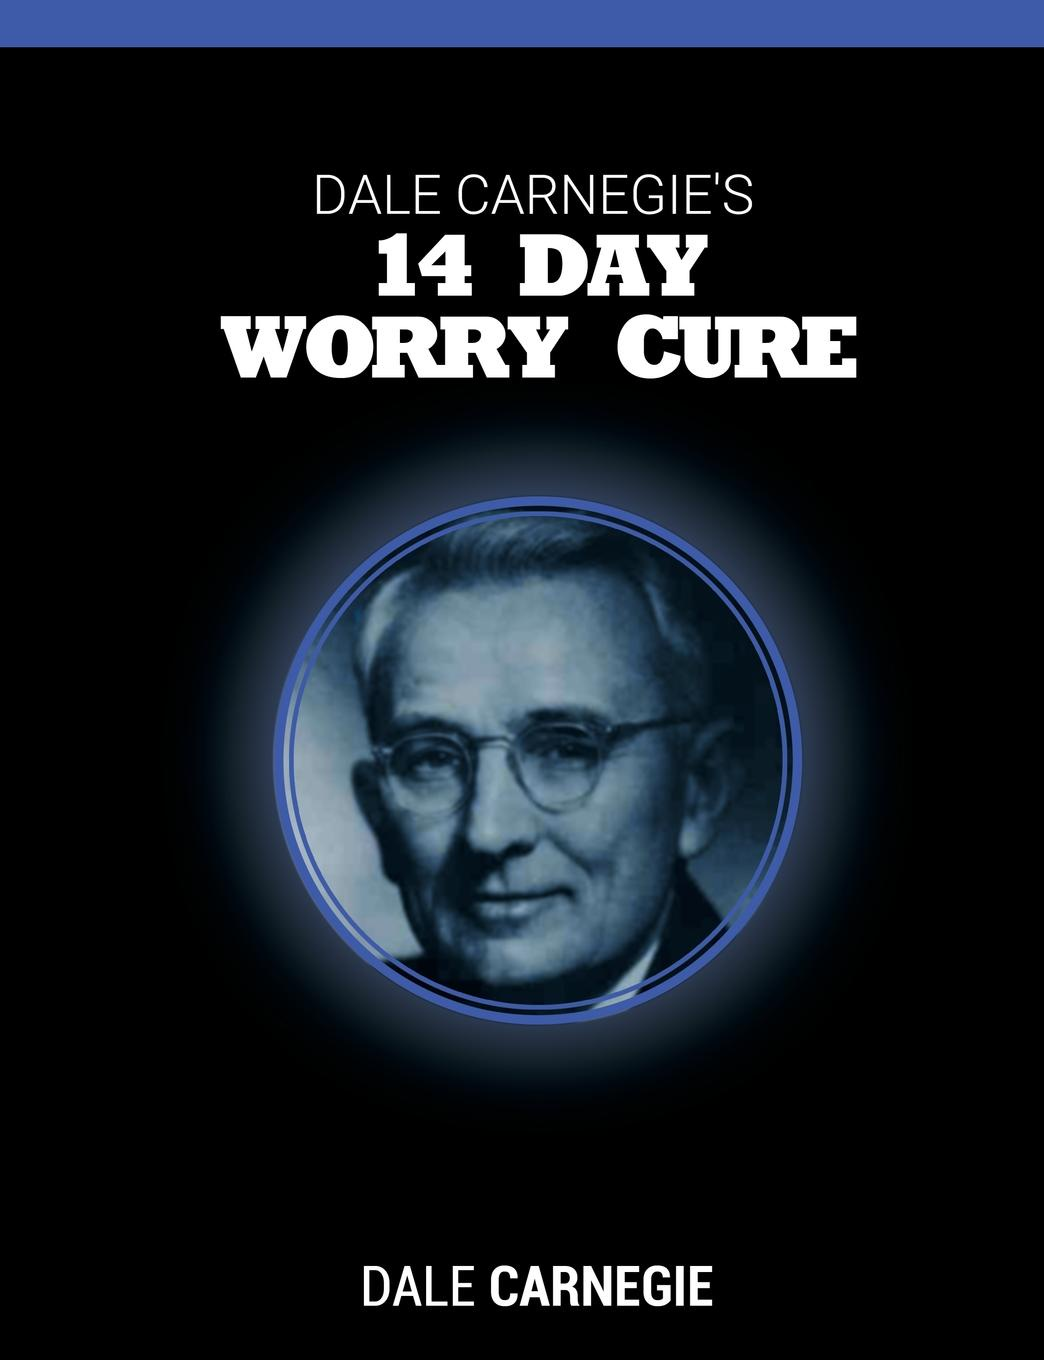 Dale Carnegie Dale Carnegie.s 14 Day Worry Cure larry f wolf policing peace what america can do now to avoid future tragedies